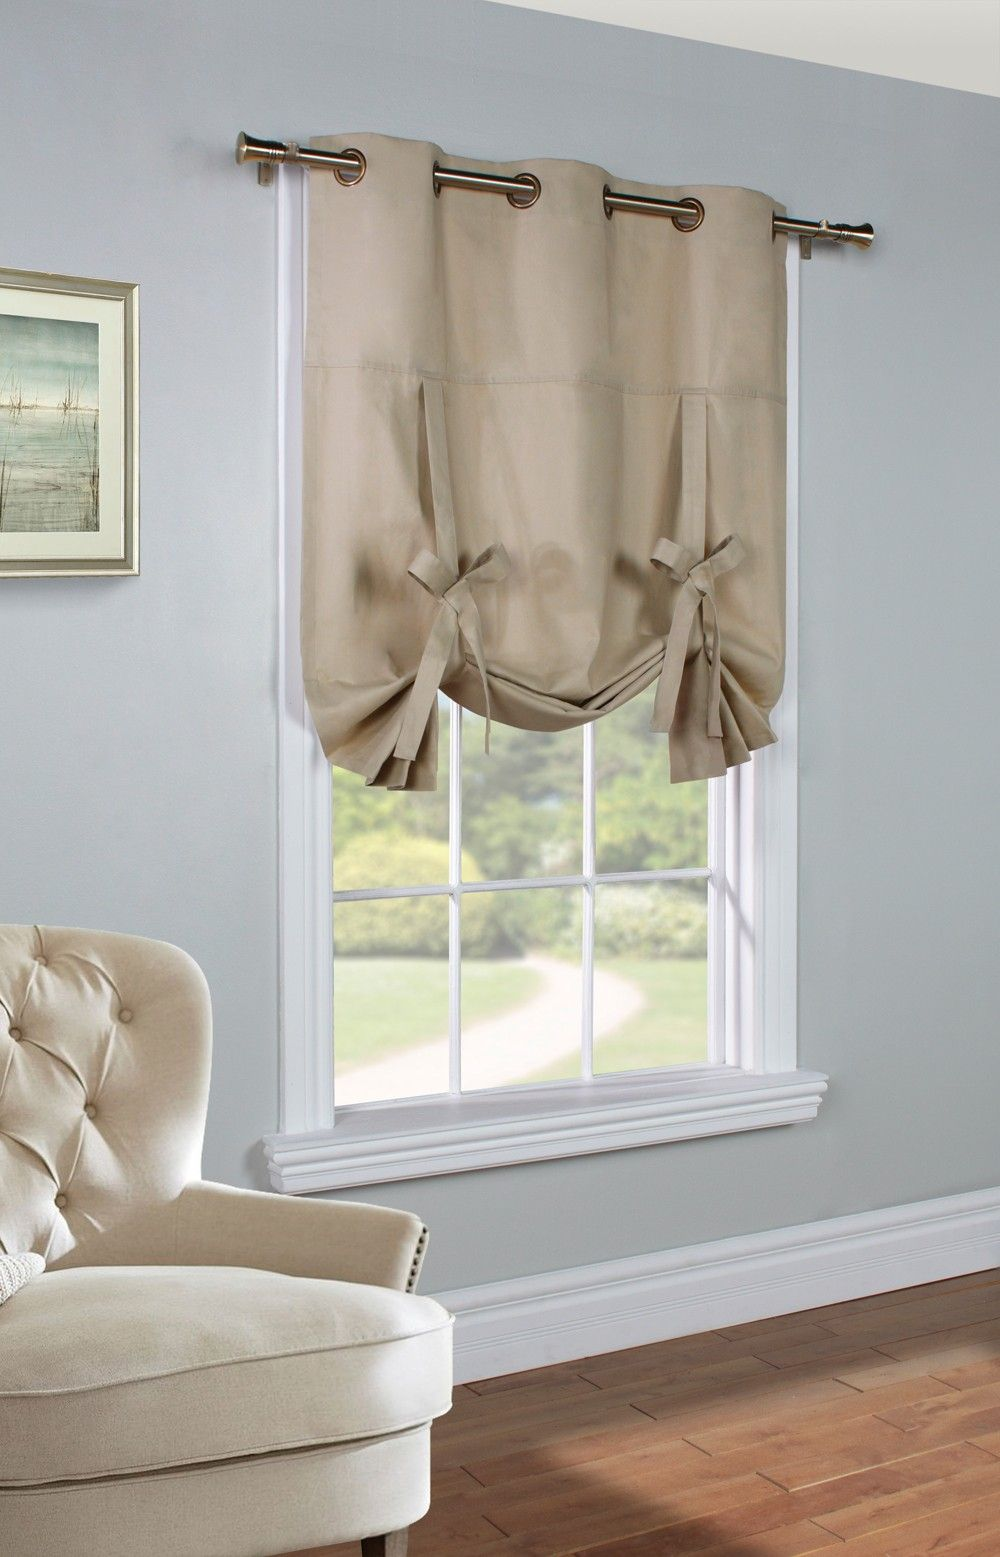 Weathermate Khaki Thermalogic Grommet Tie Up Curtain Curtain Bath Outlet Cabin Ideas